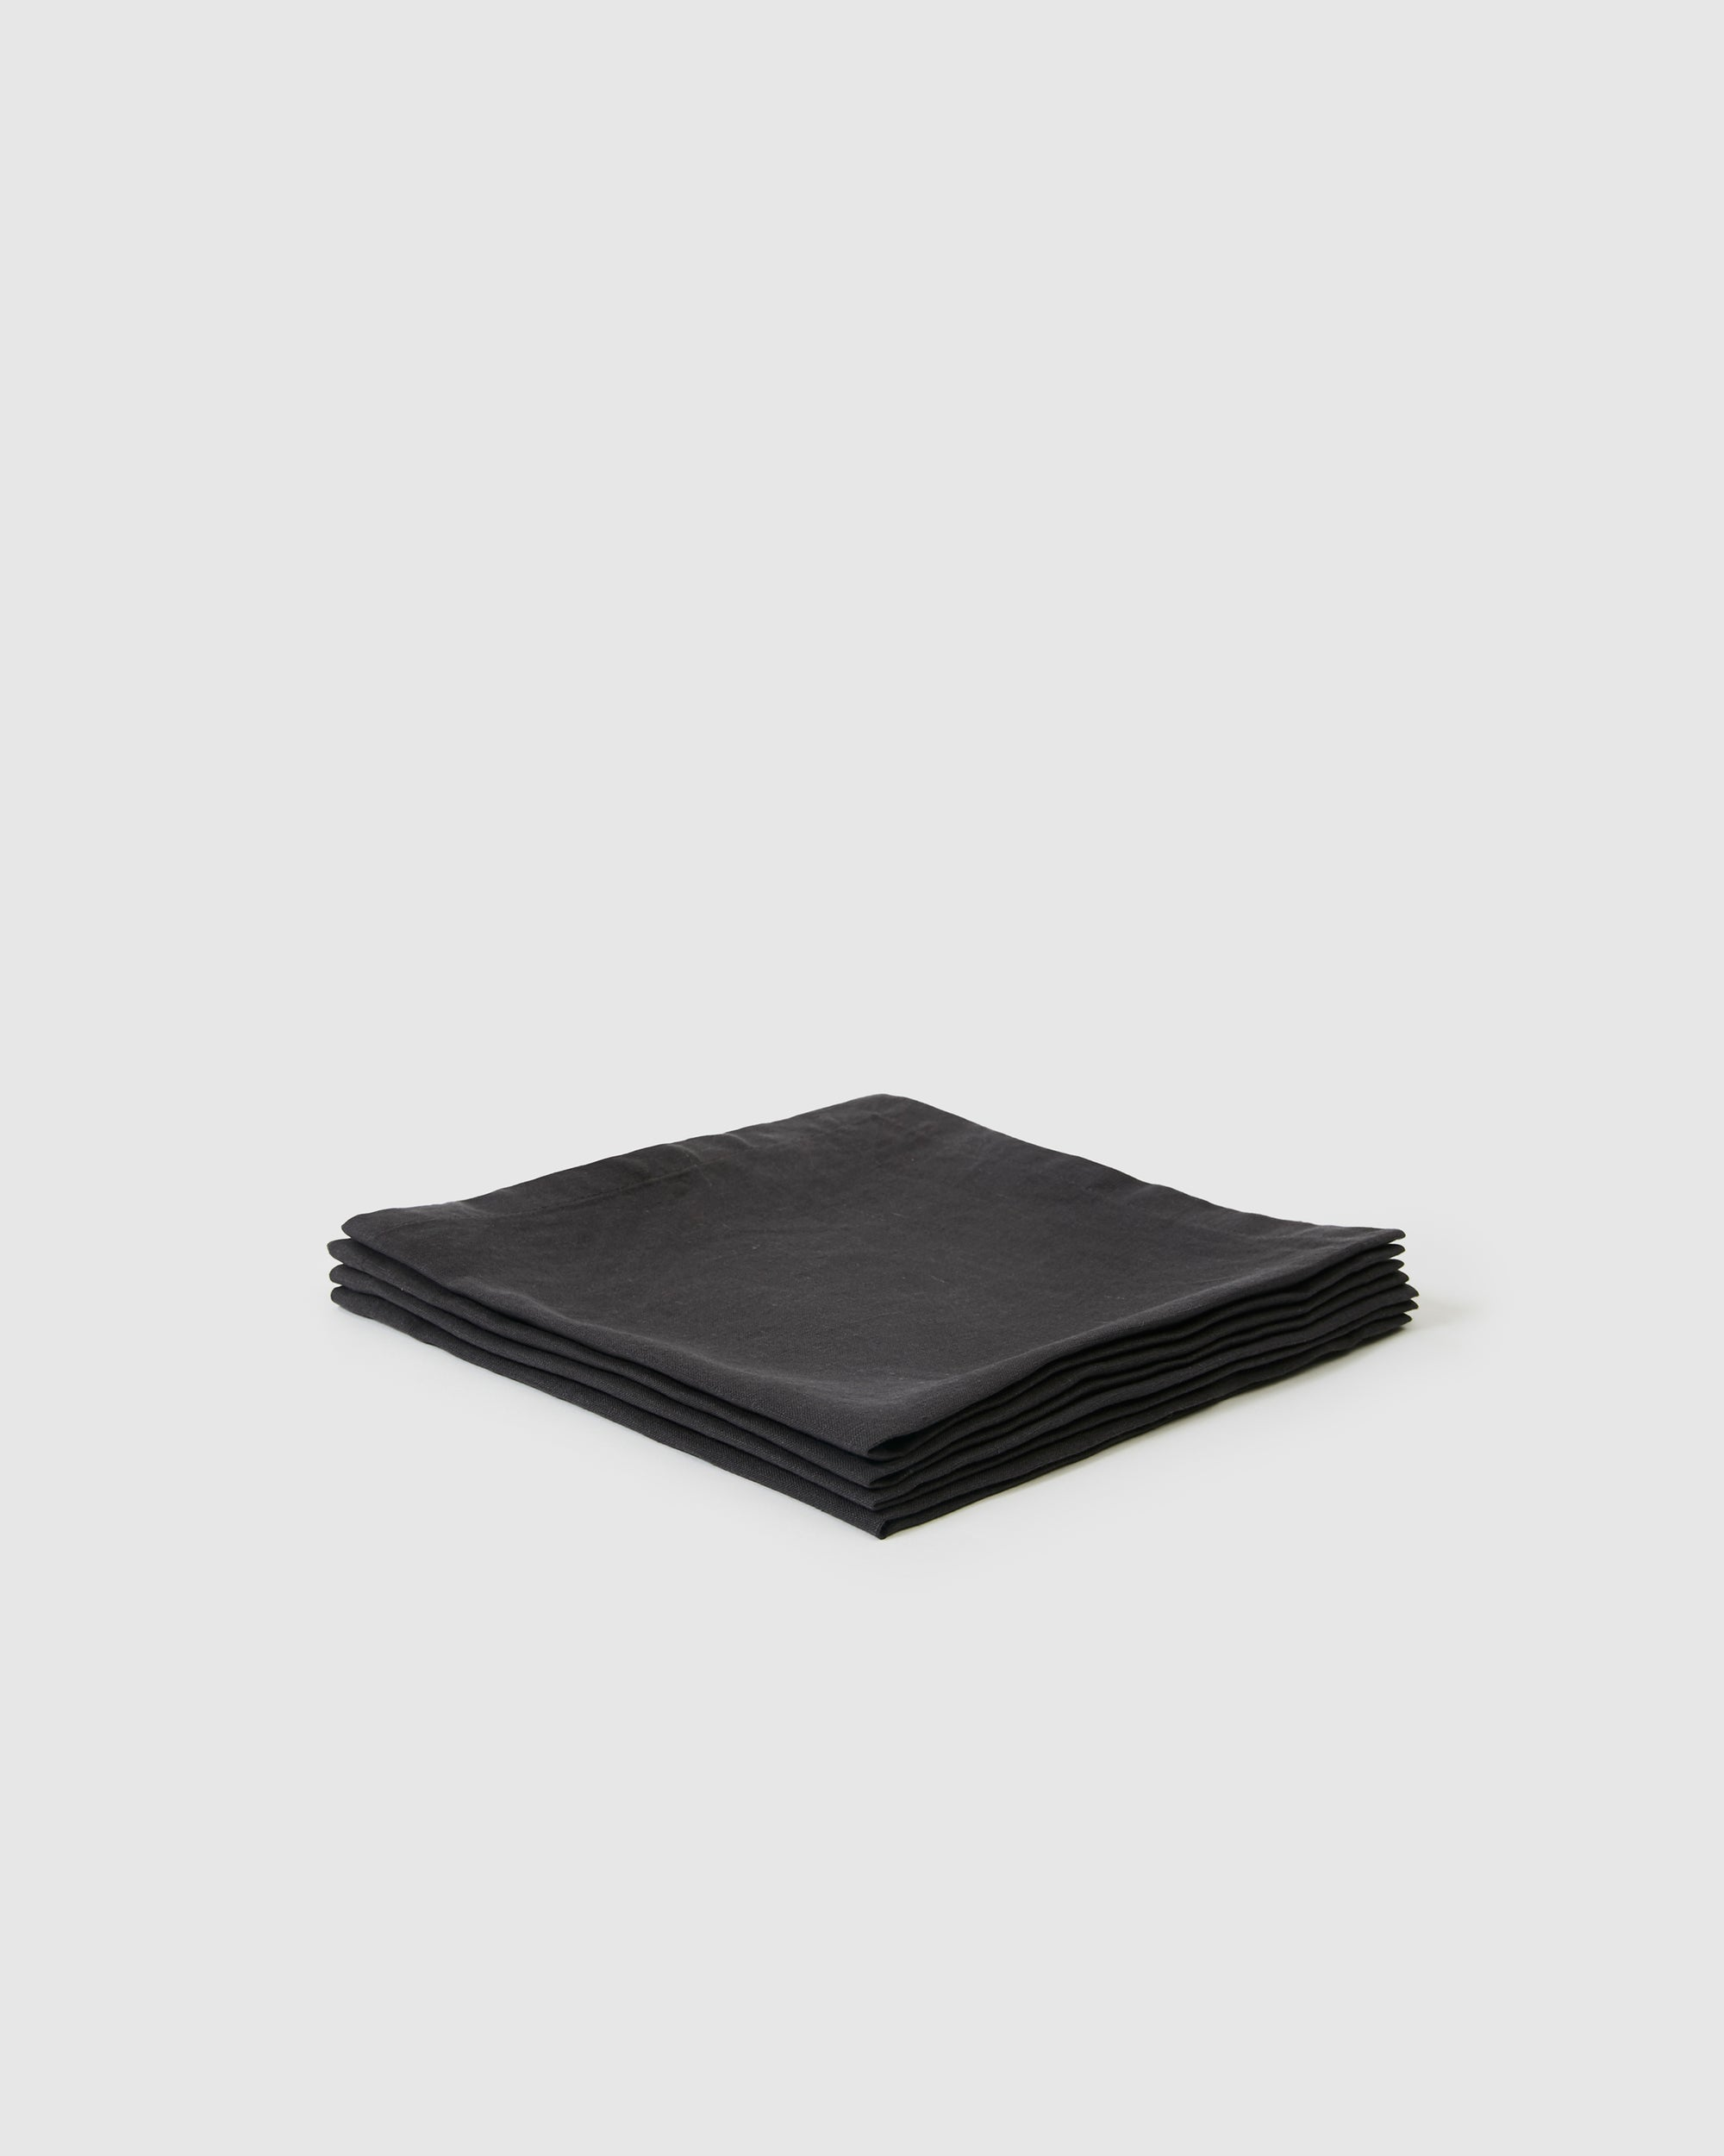 Berkeley Linen Table Napkins (Set of 4) - Charcoal